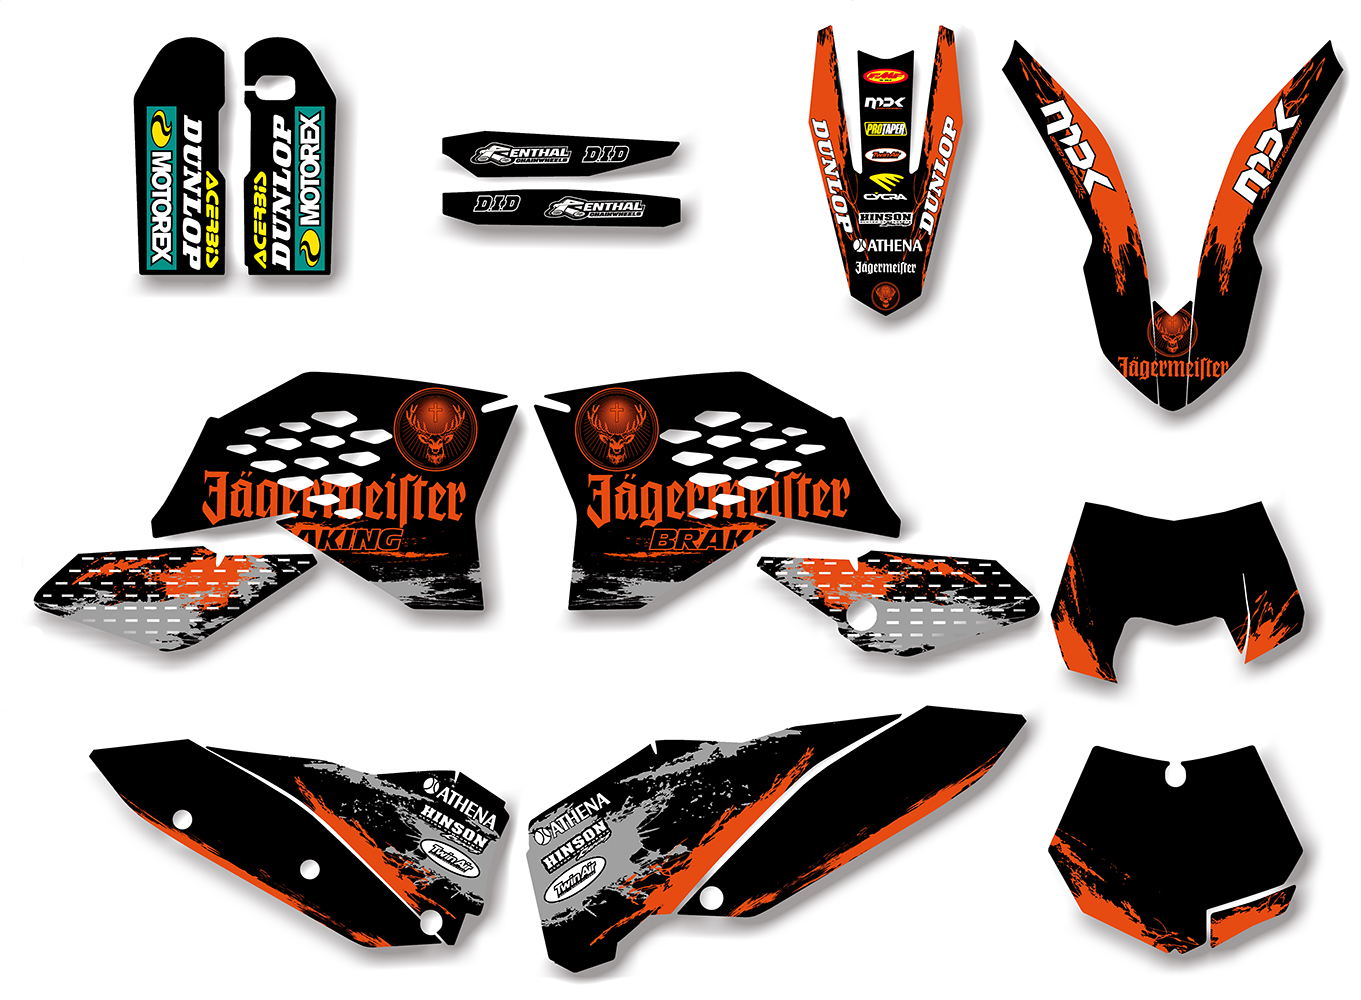 Motorctcle Graphic Decal Sticker For KTM 125 200 250 300 350 450 525 SX SXF 2007